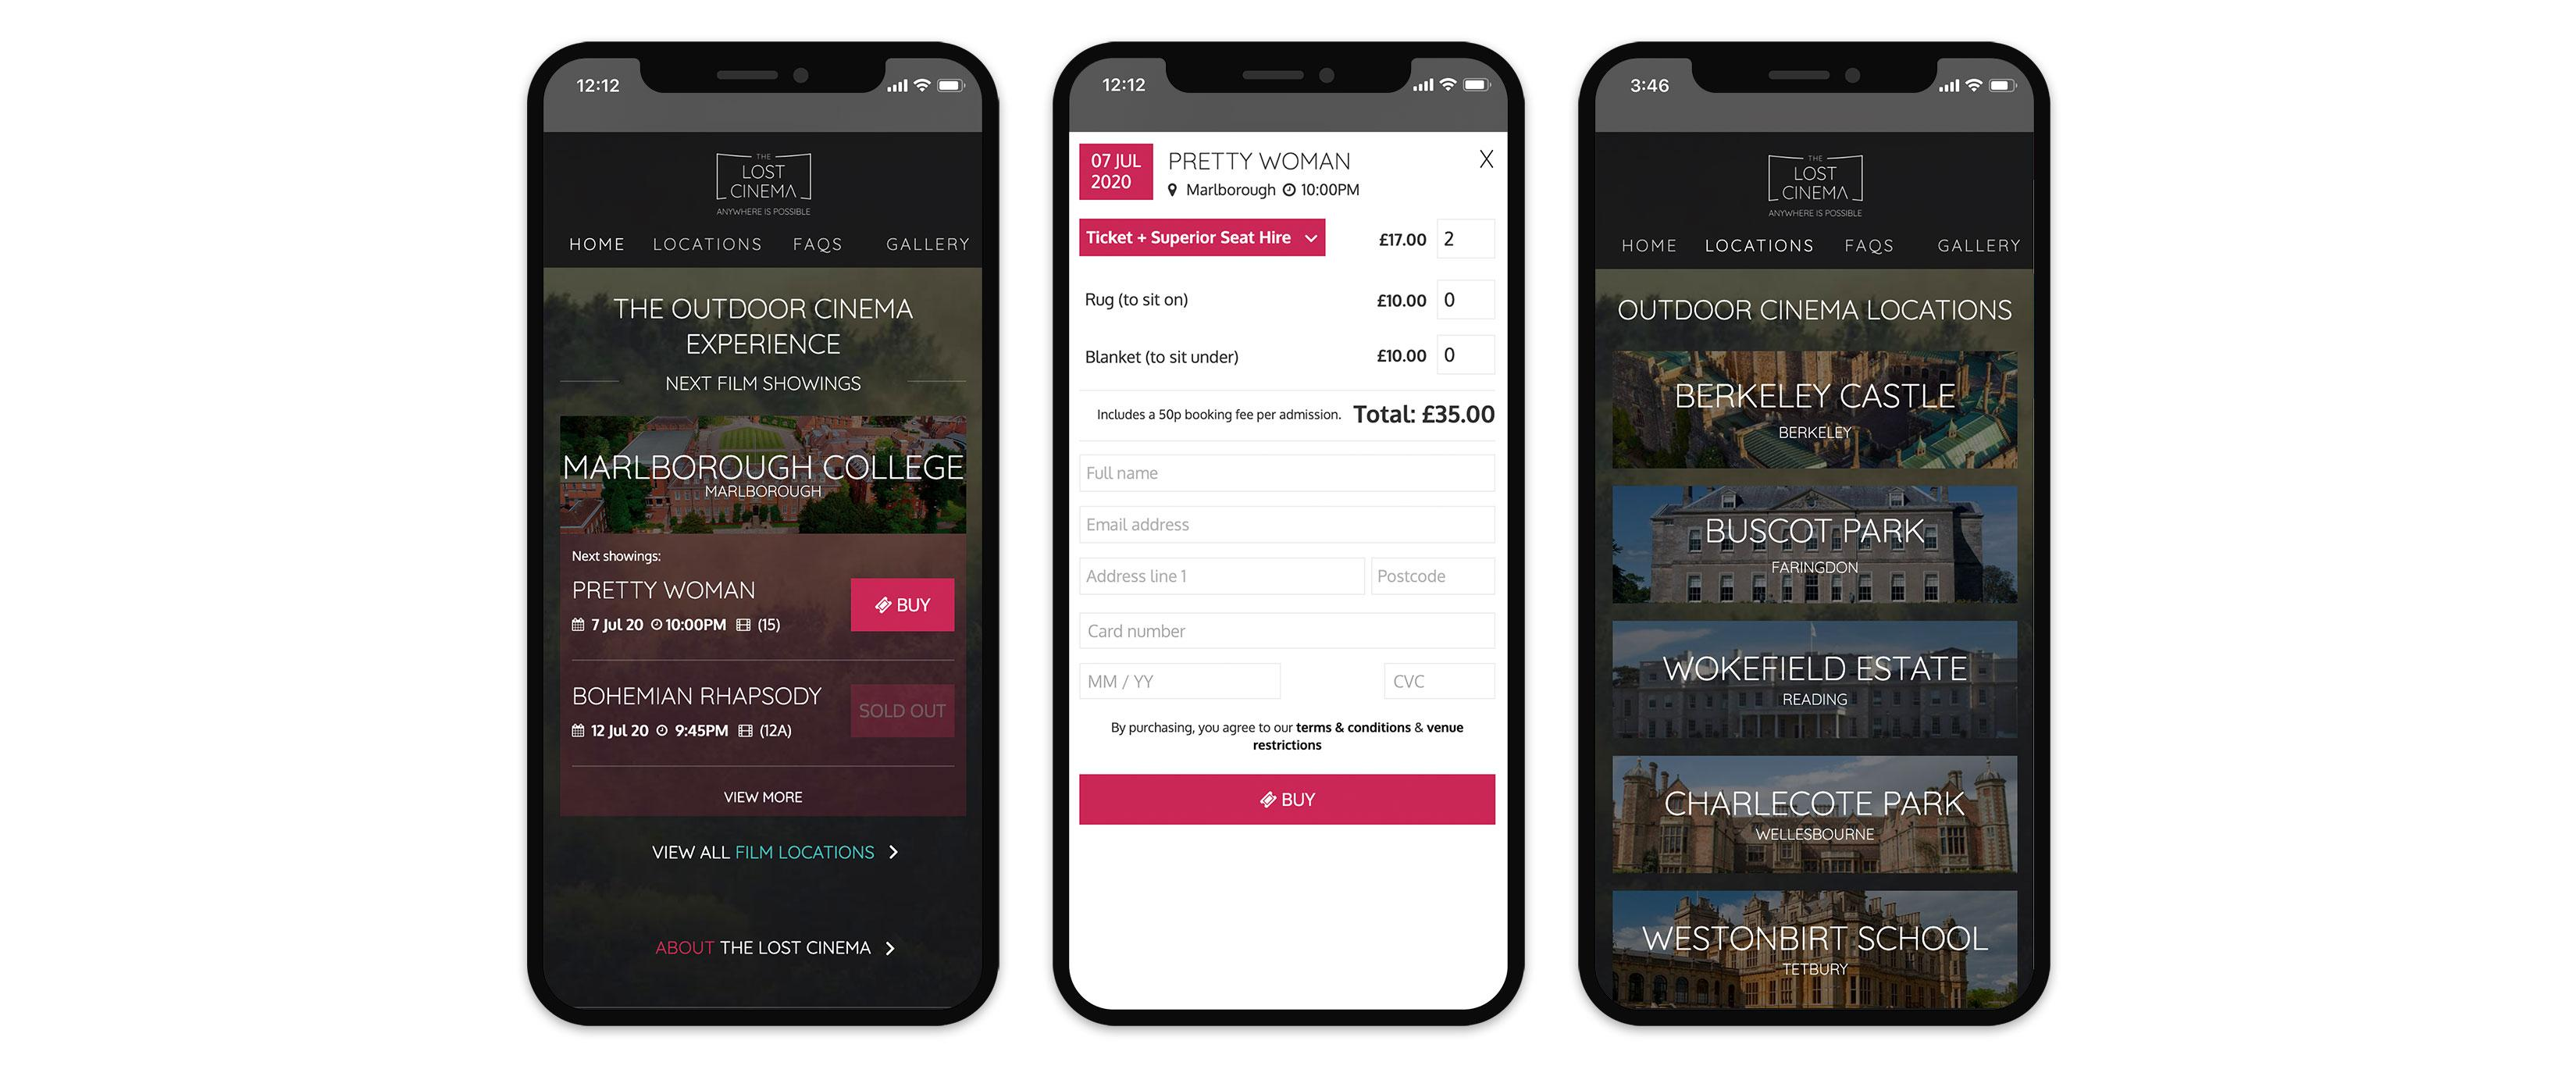 The Lost Cinema mobile website design